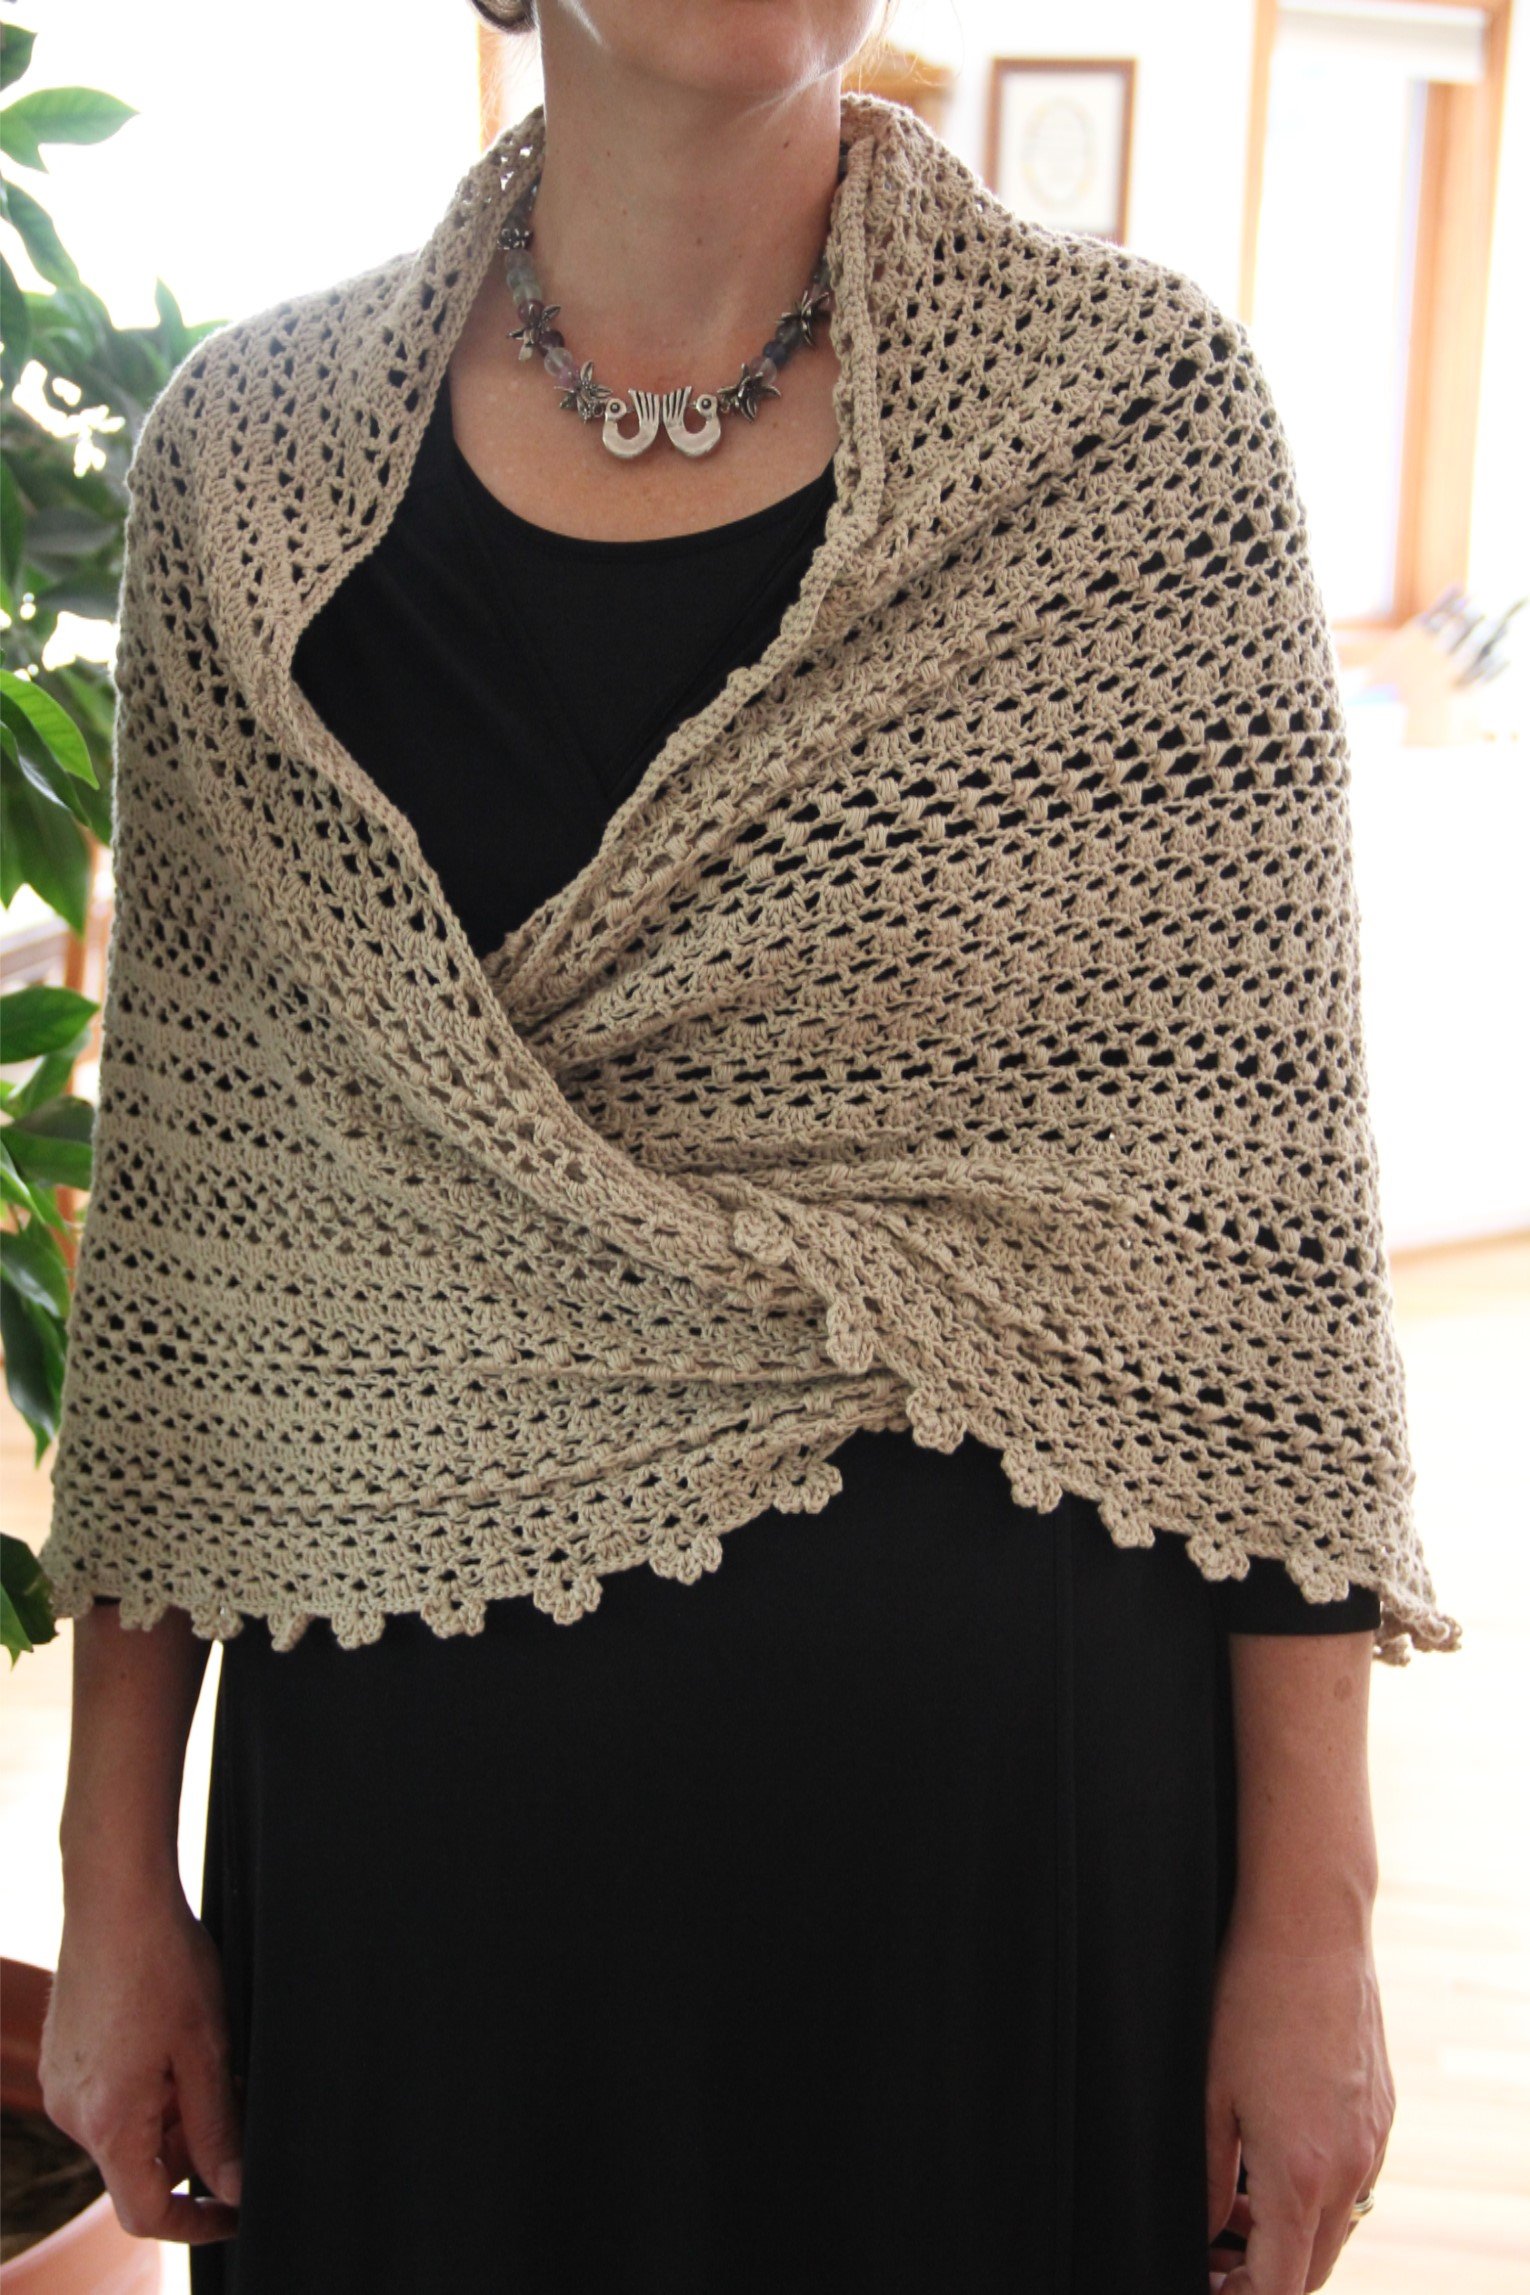 Crochet Easy Shawl Pattern Free : Free Crochet Patterns